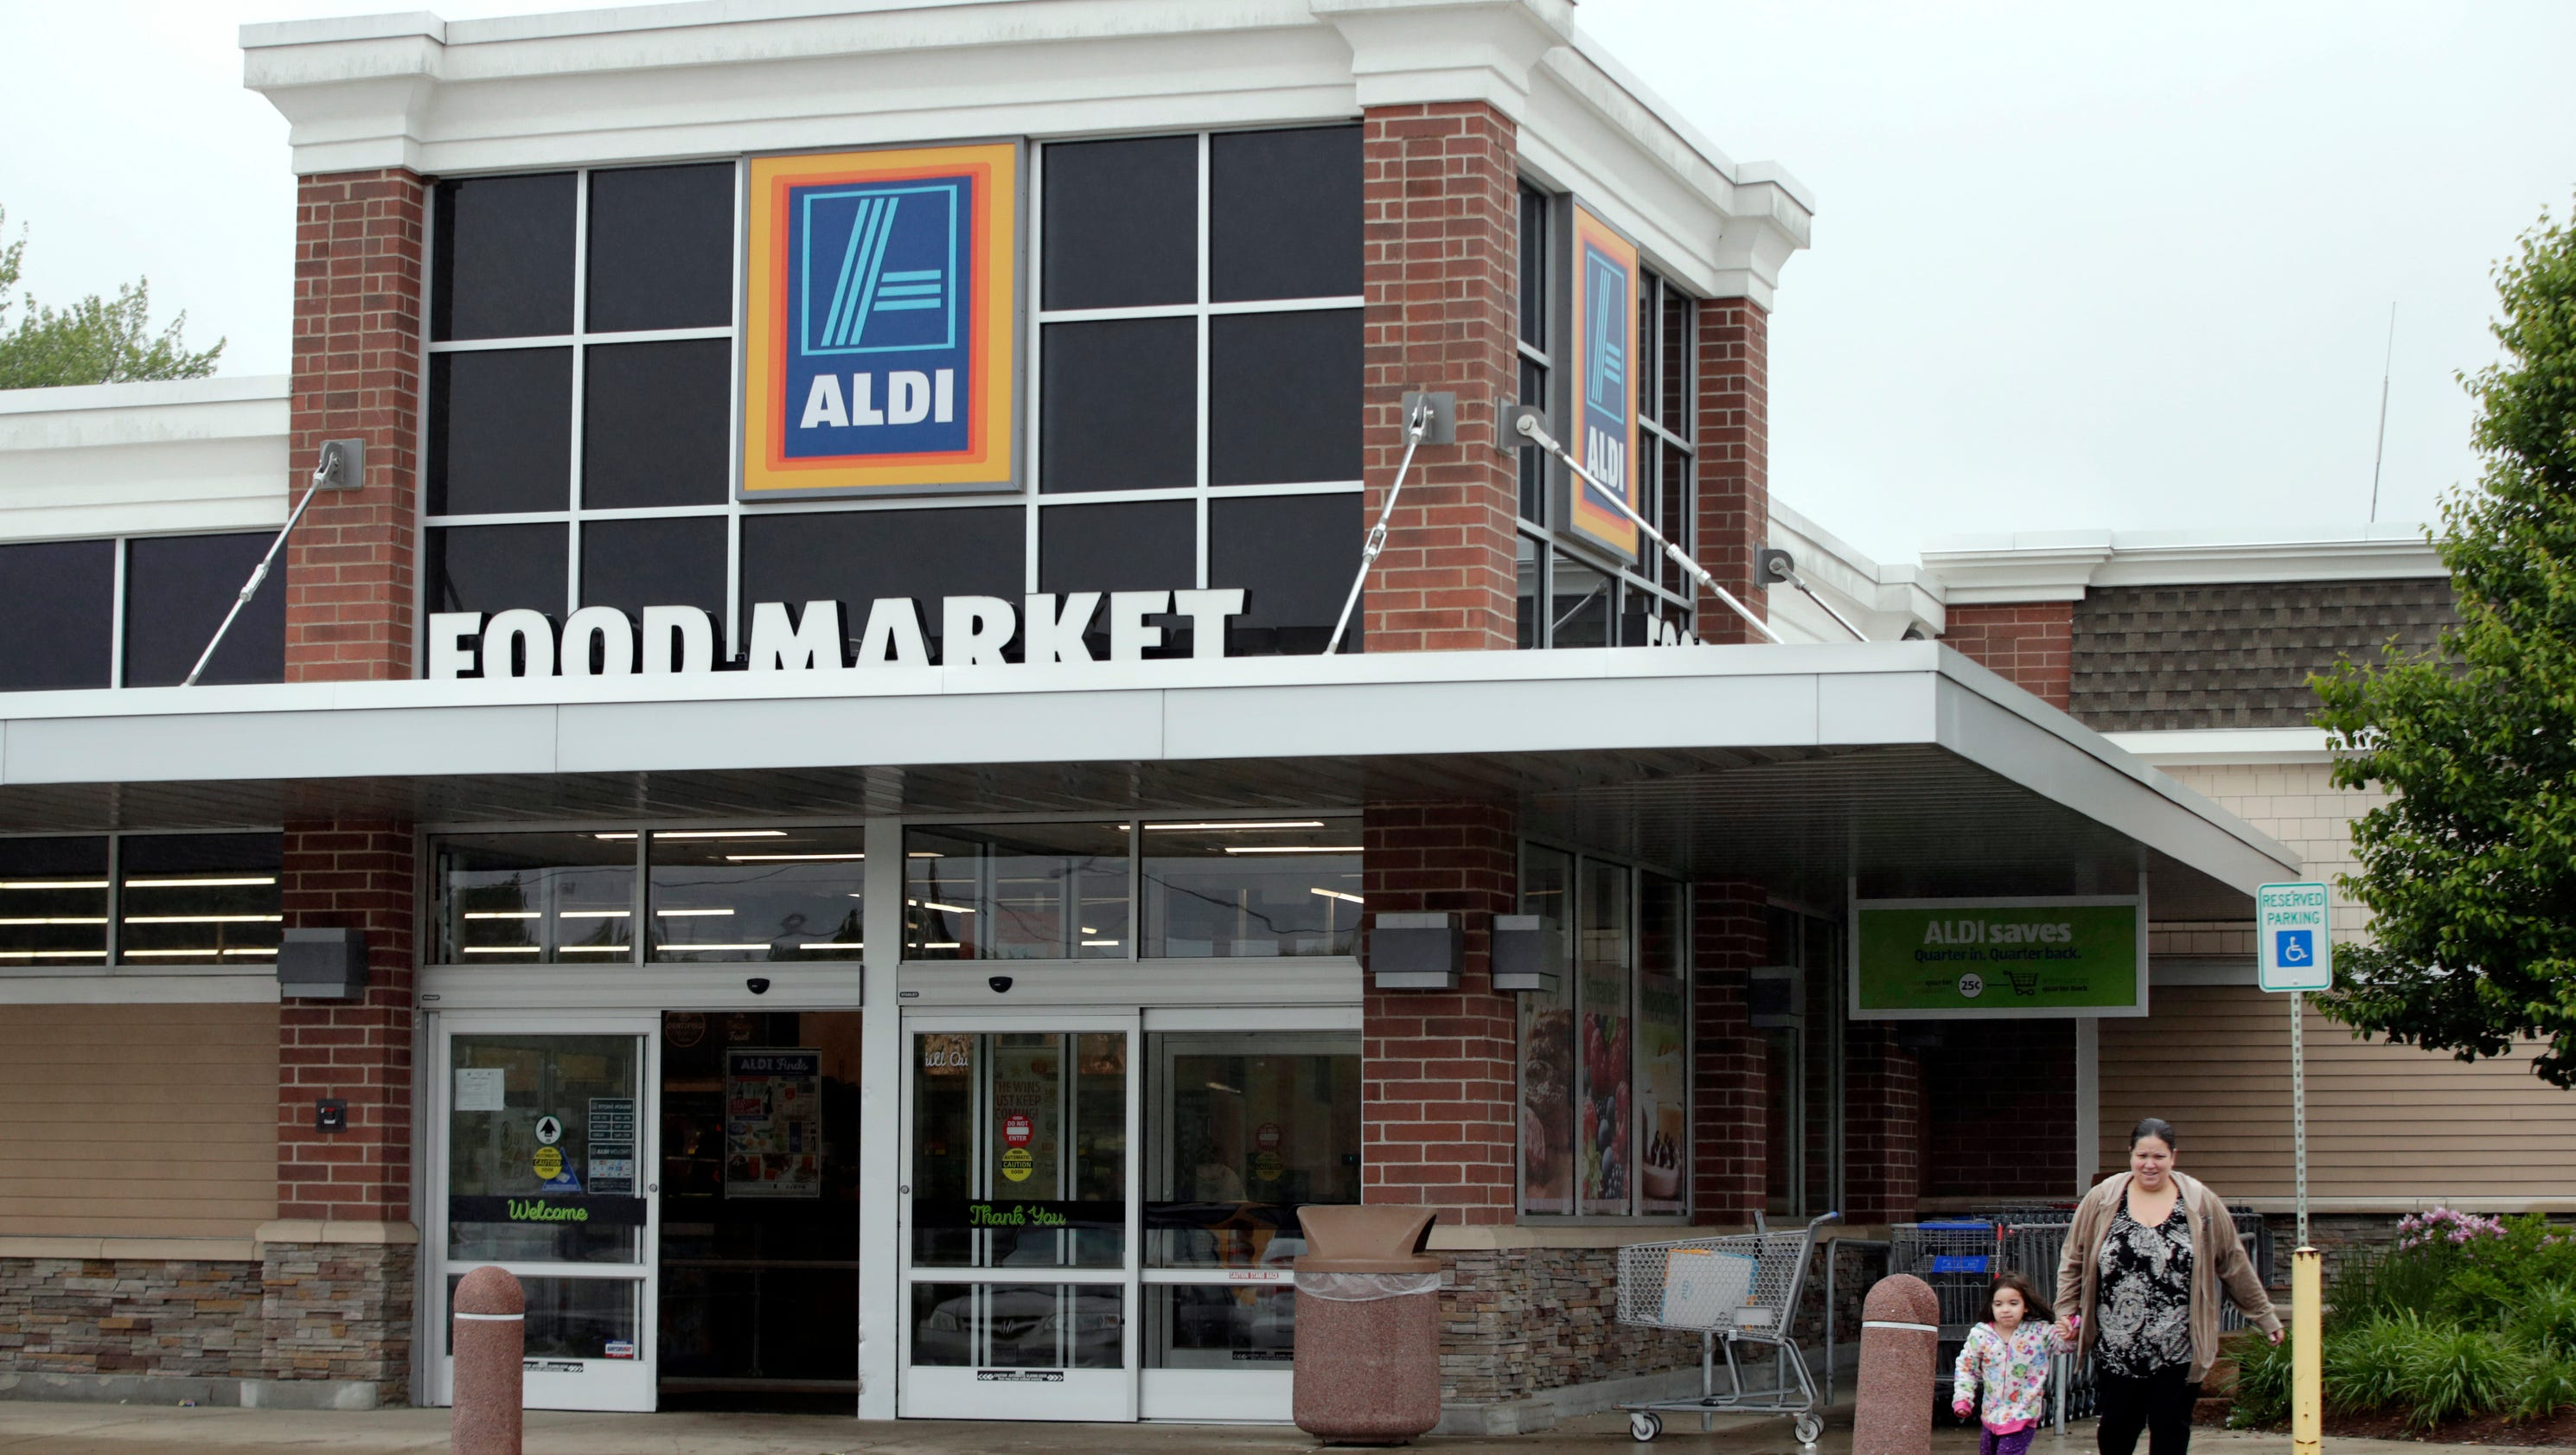 Grocery chain aldi to open another 900 stores in u s for What grocery stores are open today